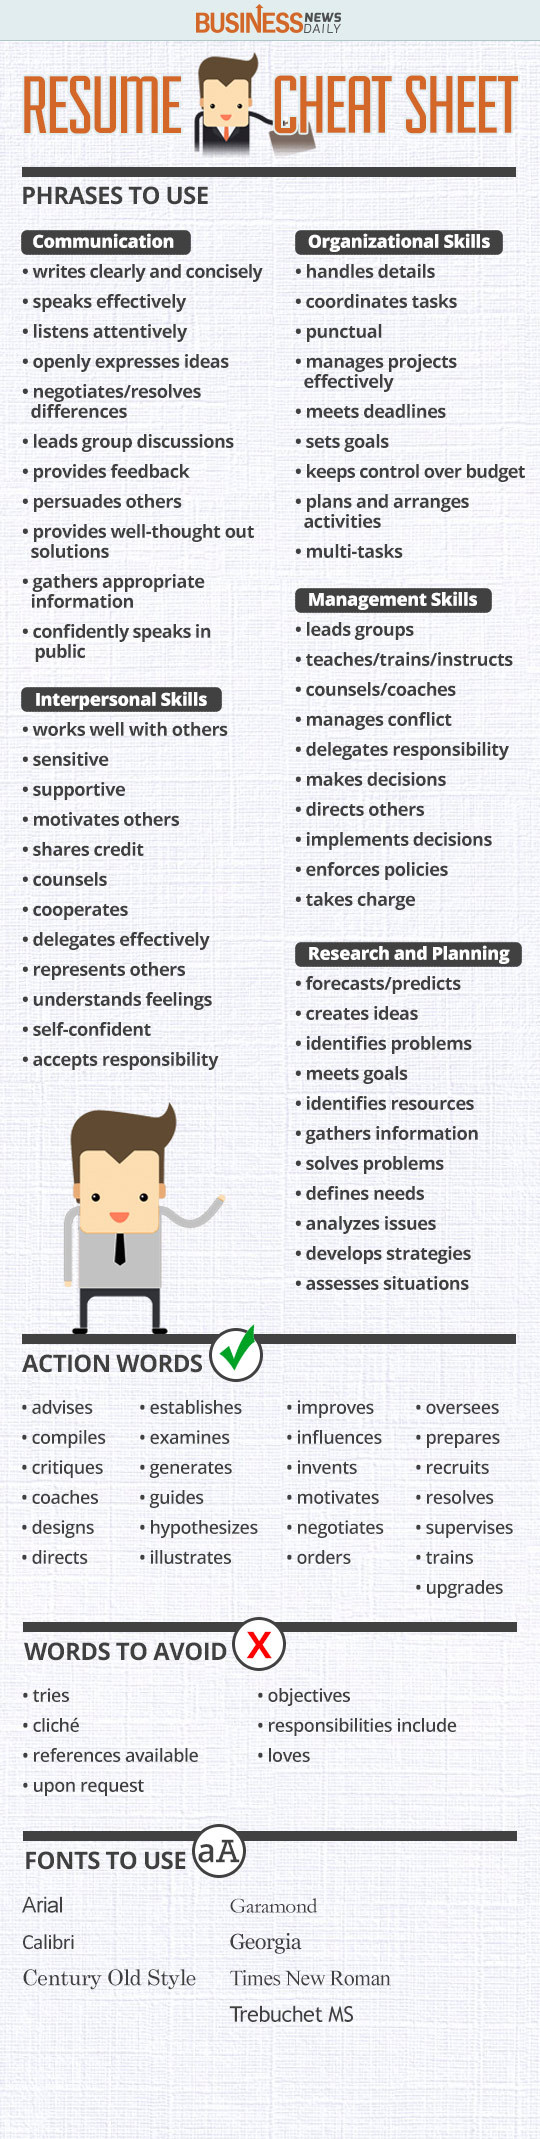 your resume cheat sheet writing guide businessnewsdaily another word for ability on Resume Another Word For Ability On Resume